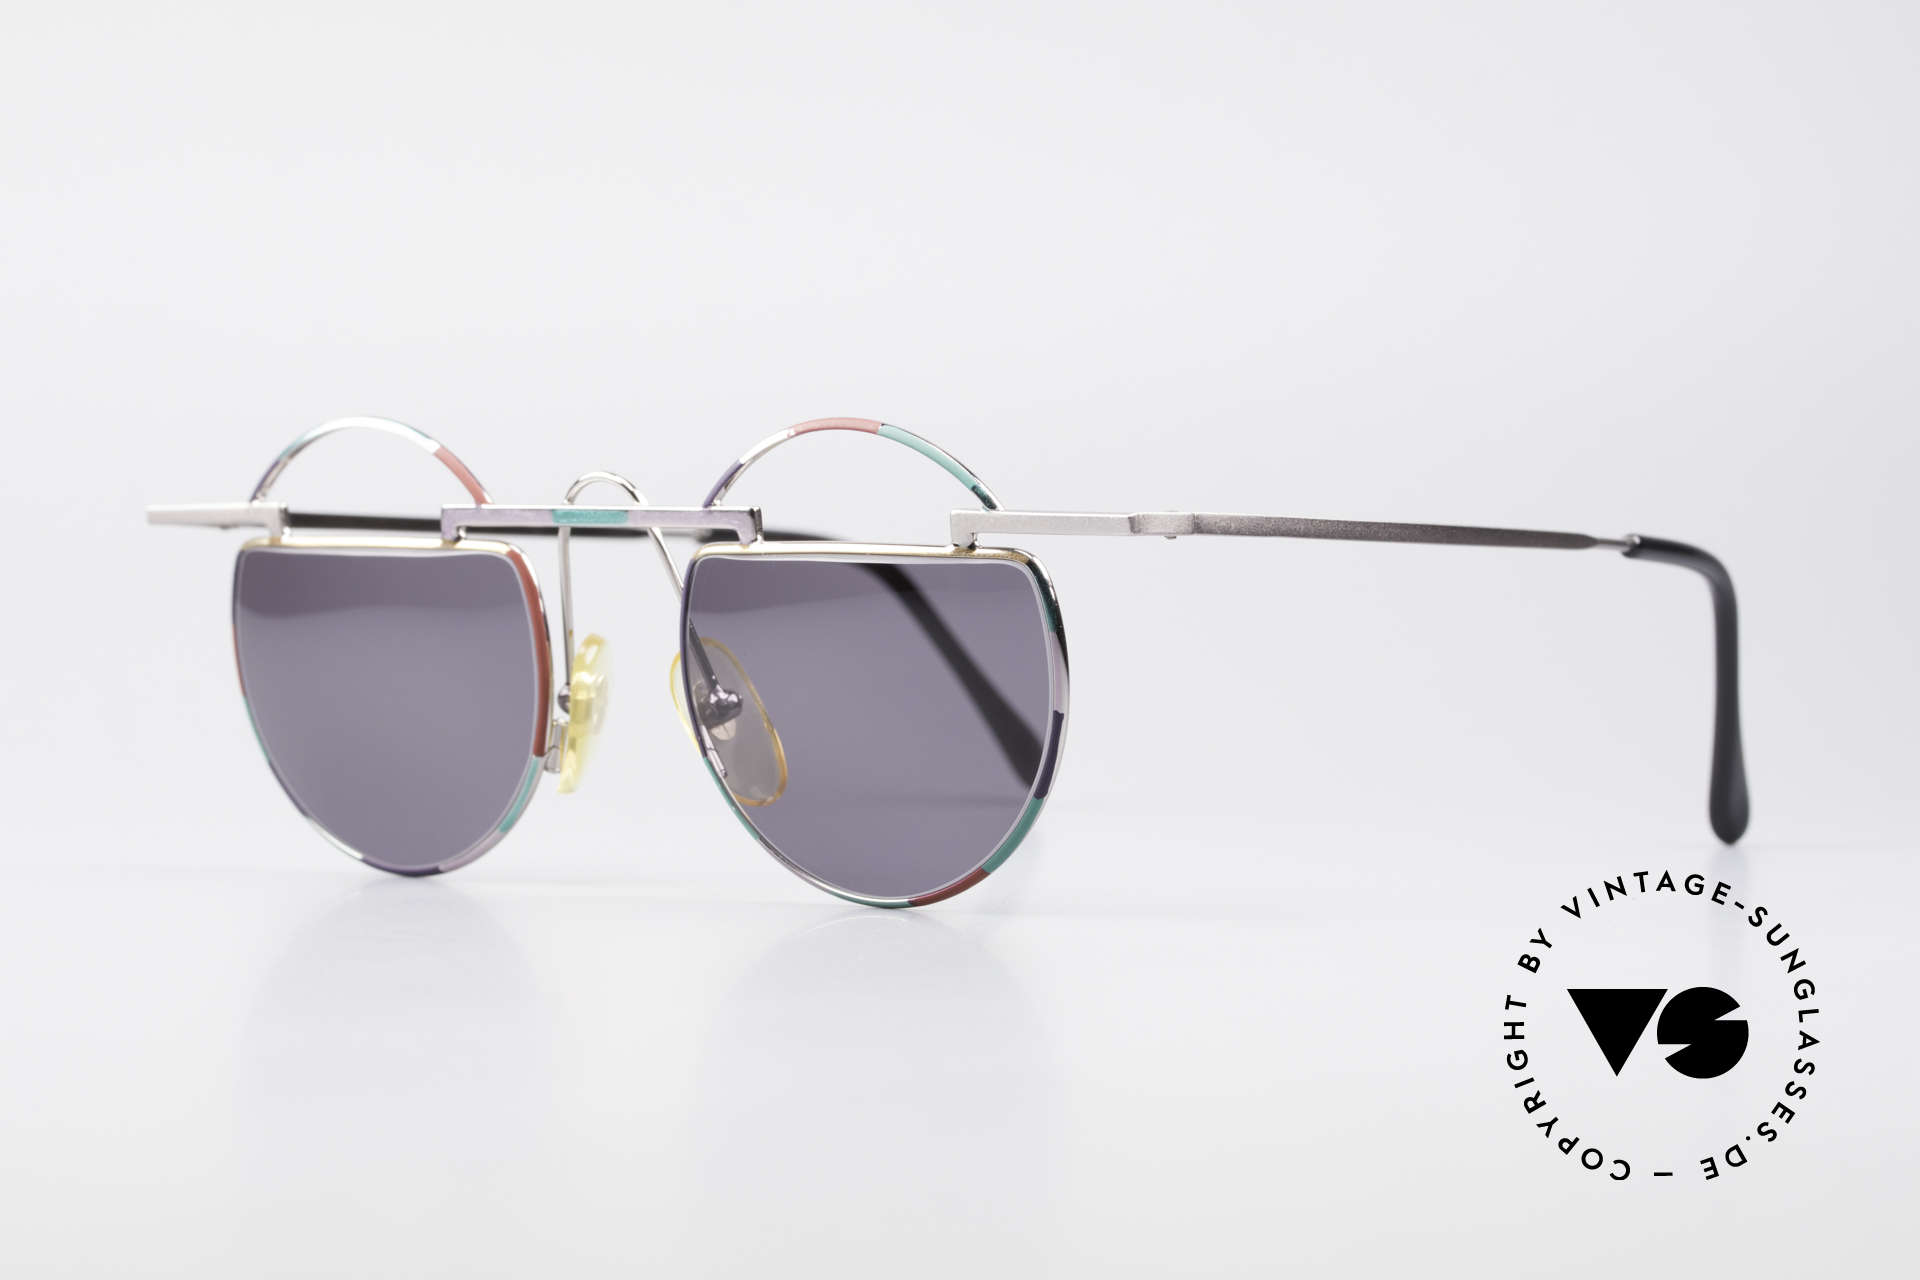 Taxi 221 by Casanova Vintage Art Sunglasses, represents the exuberance of the Venetian carnival, Made for Women